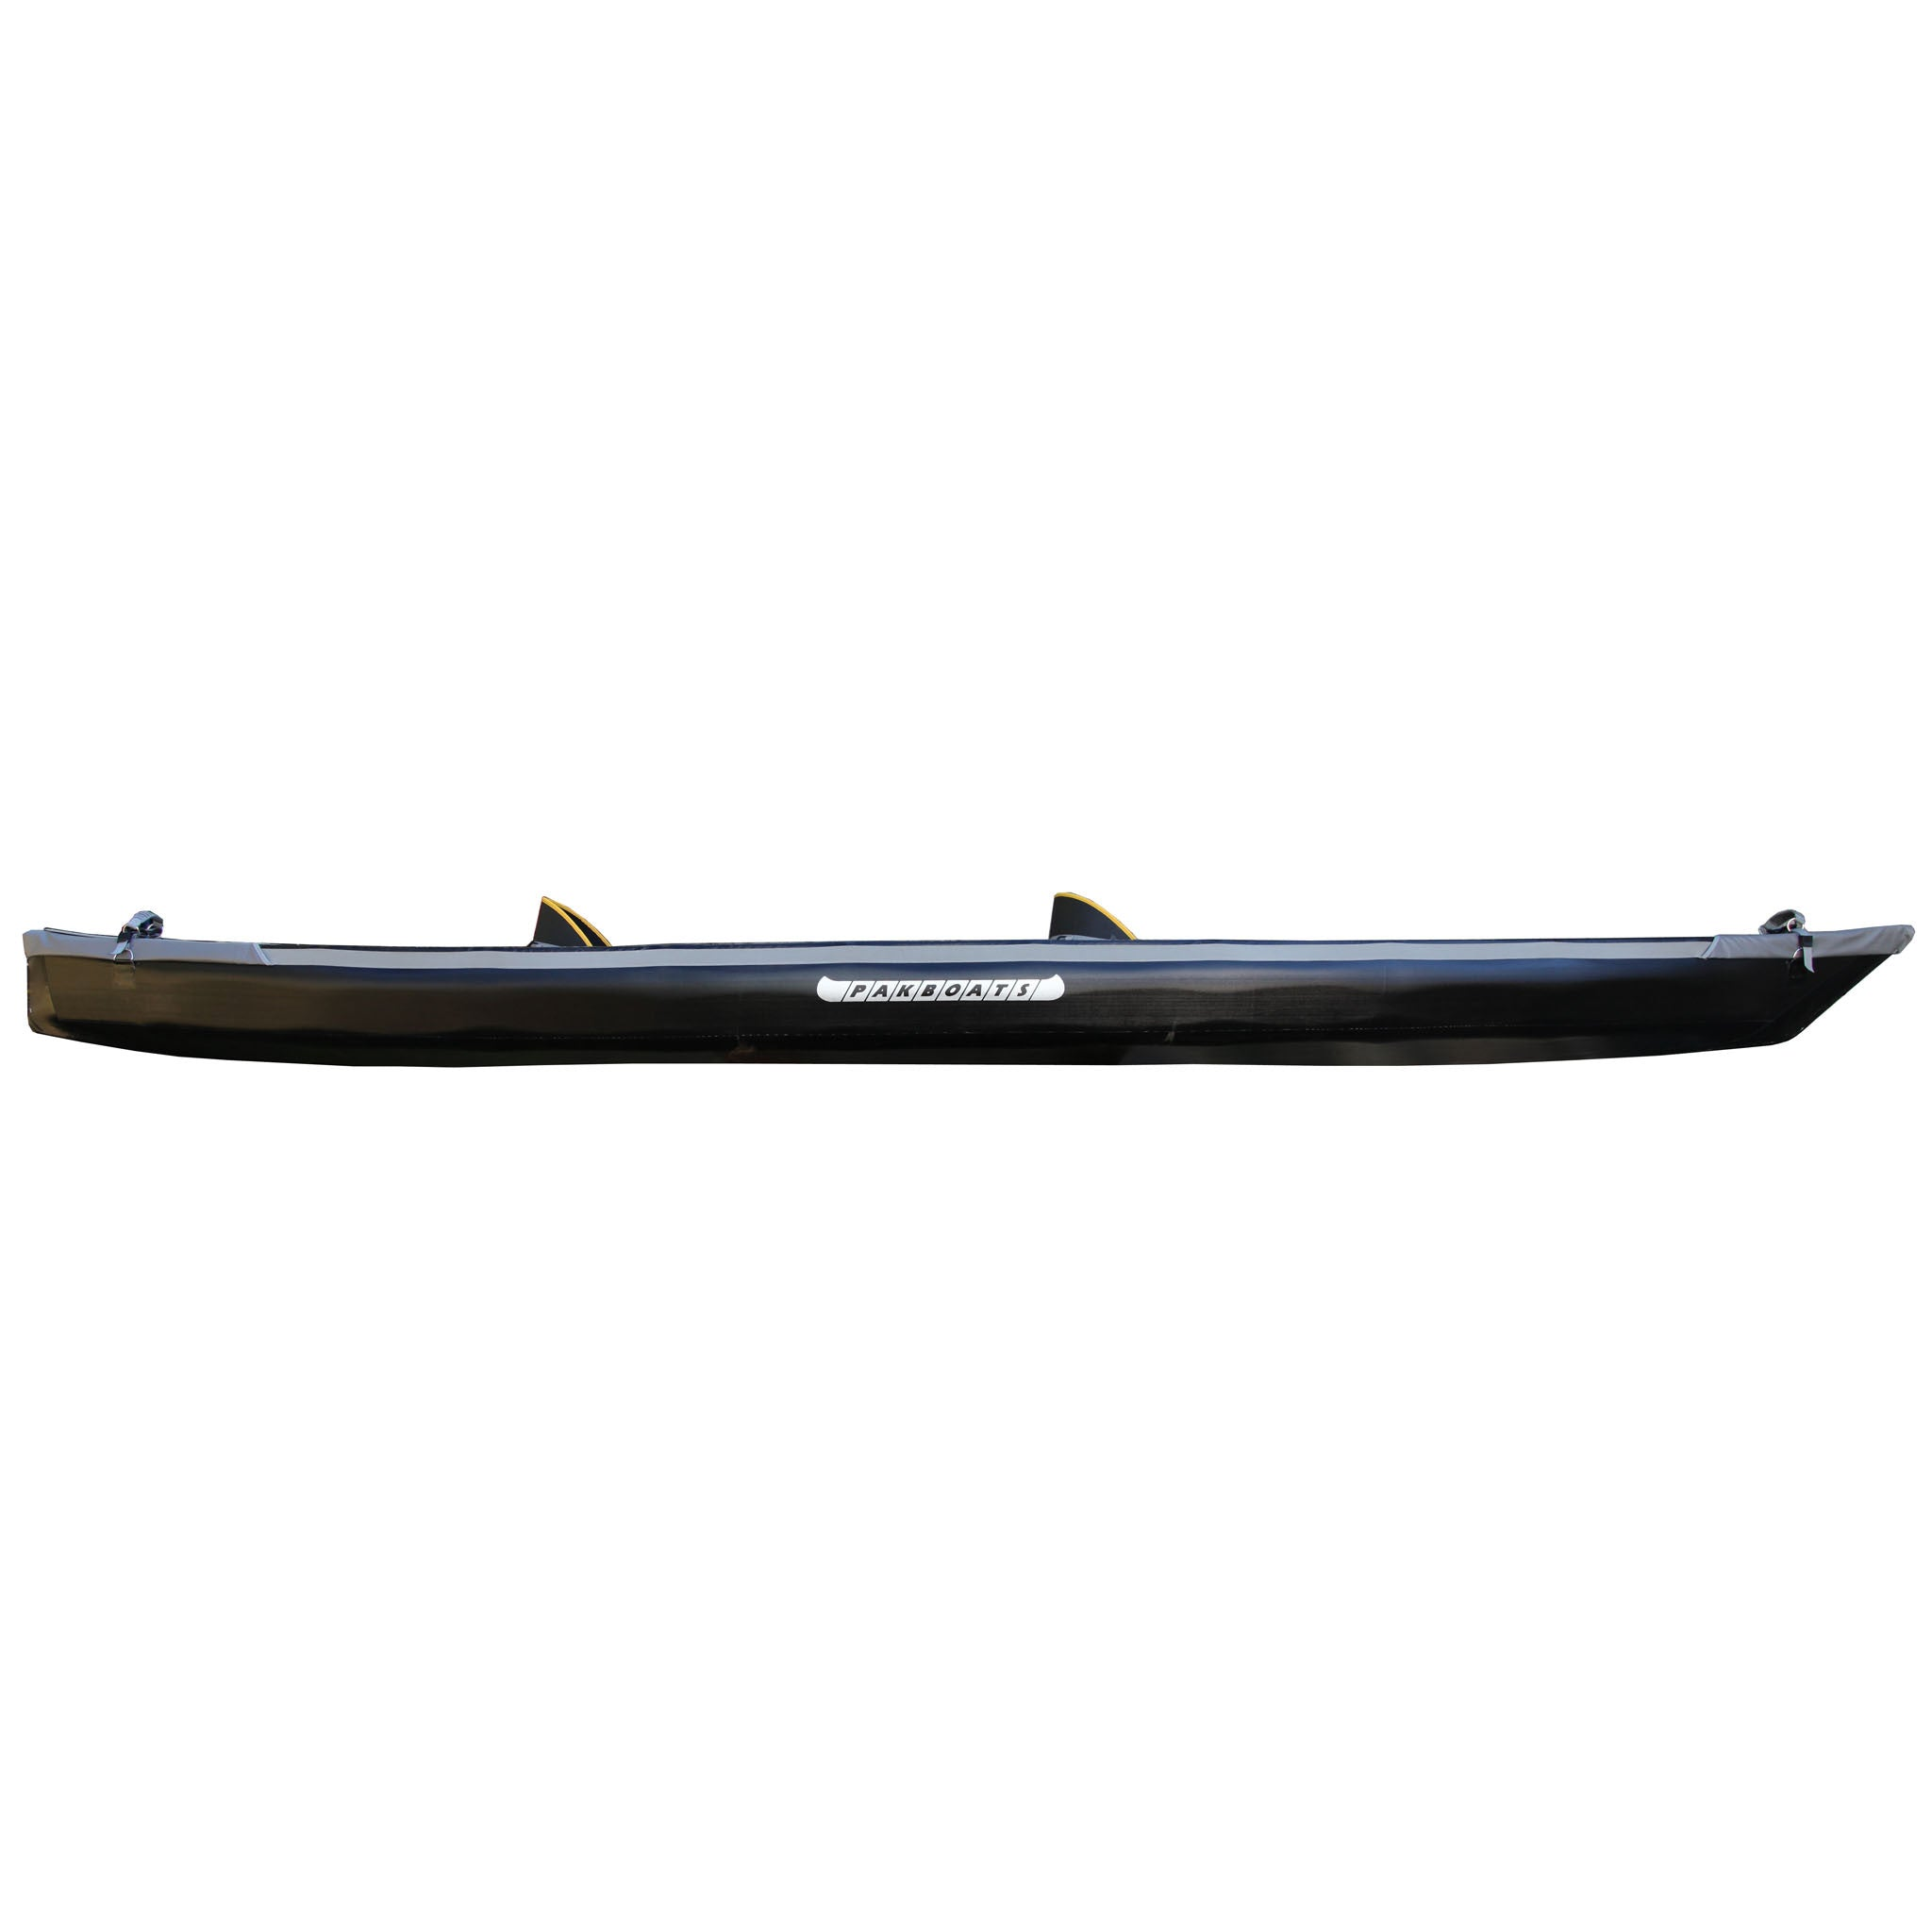 Puffin Saranac folding kayak in black